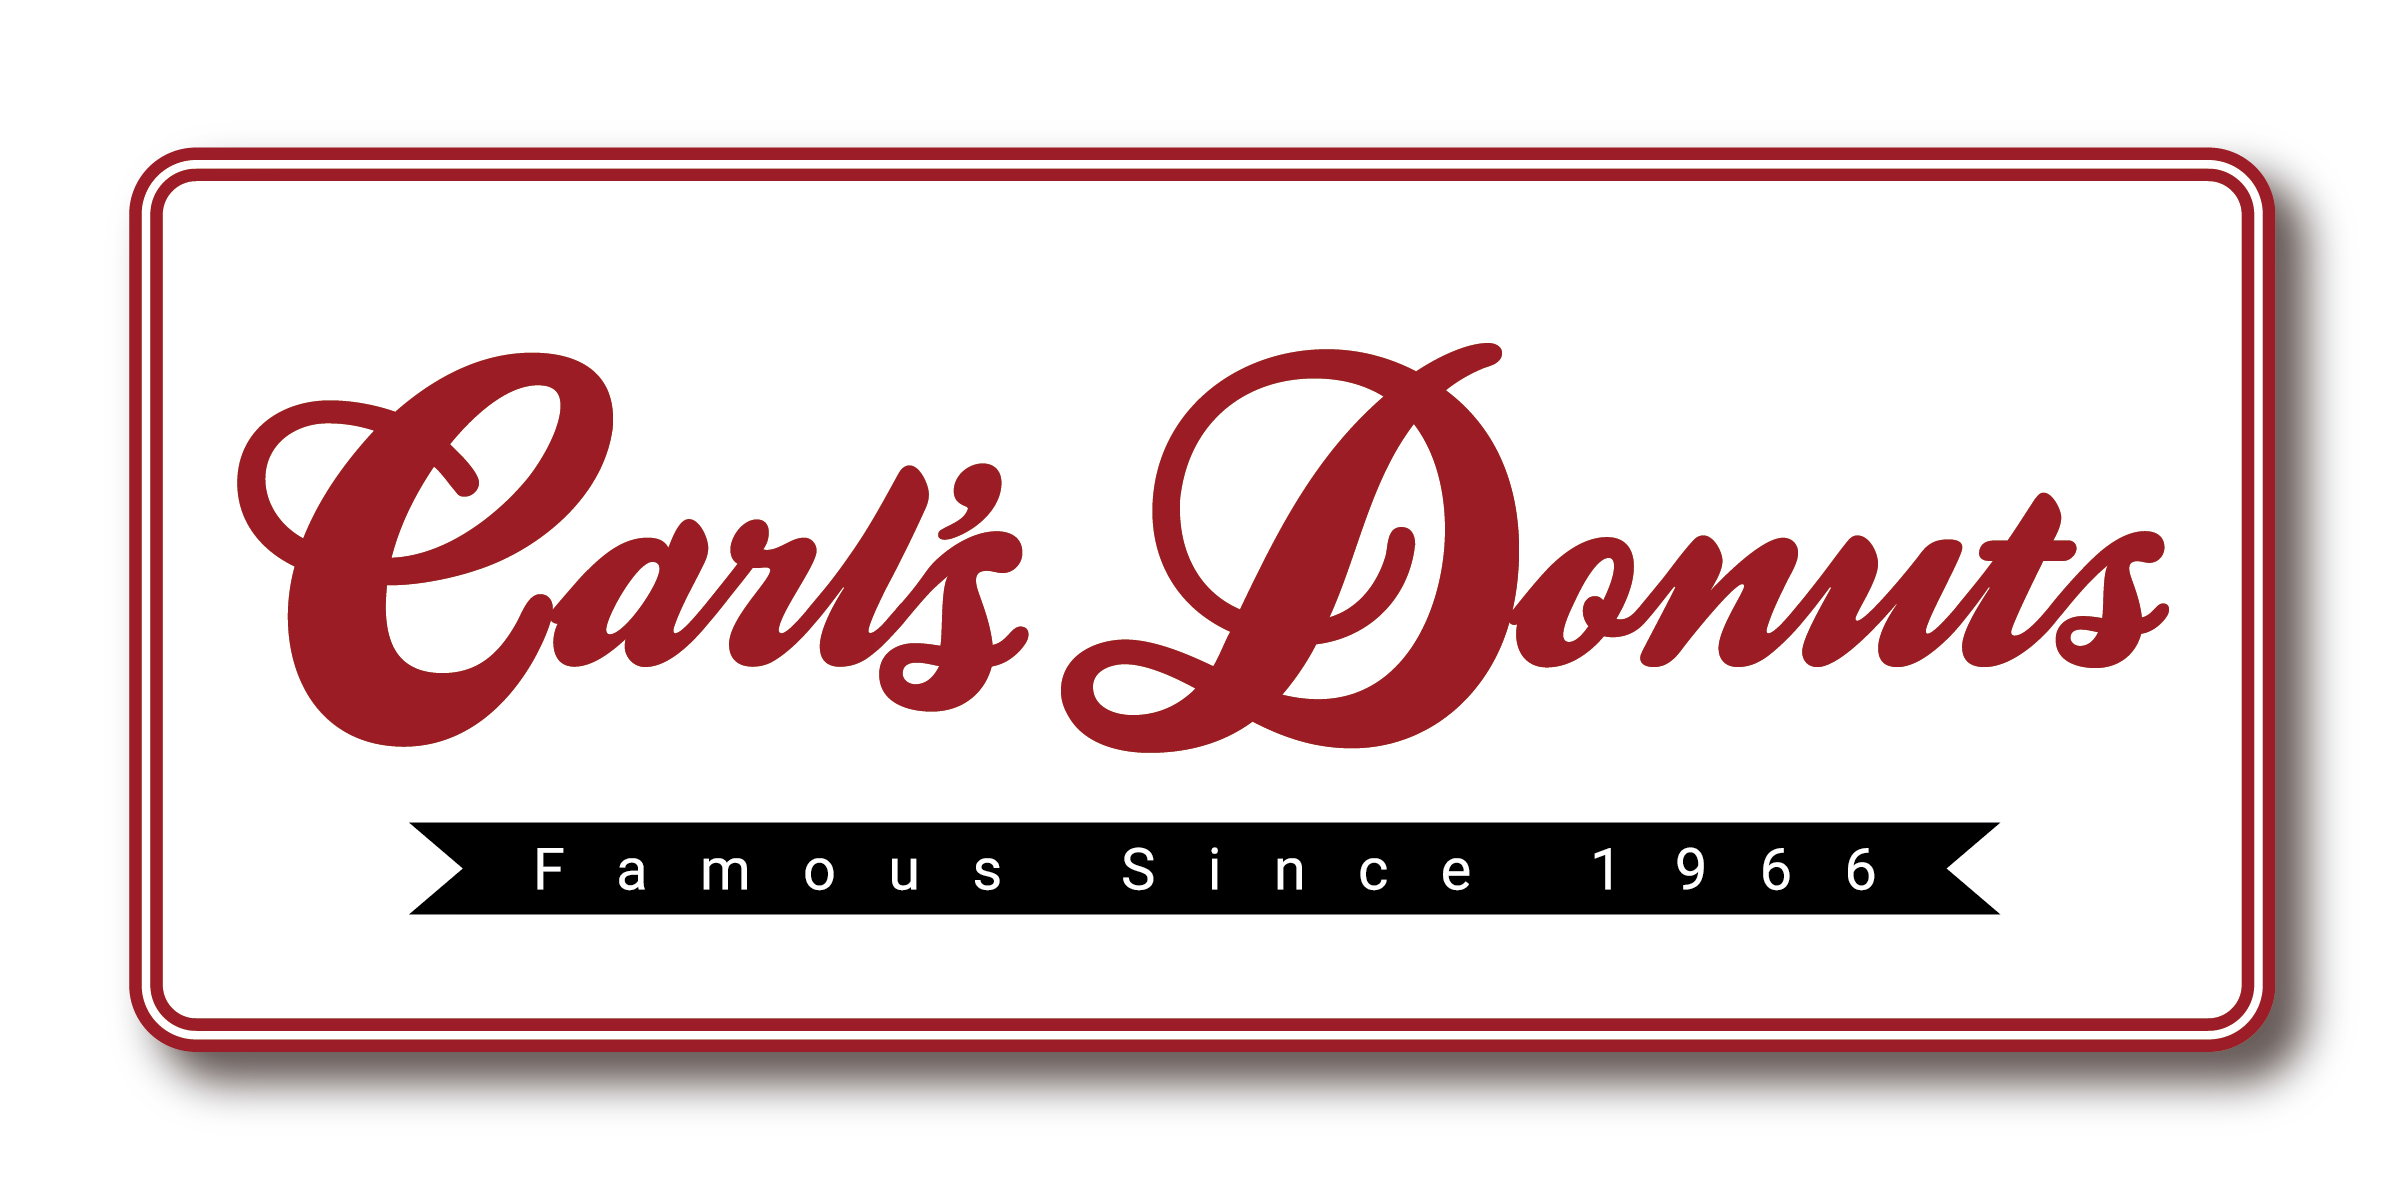 carl s donuts